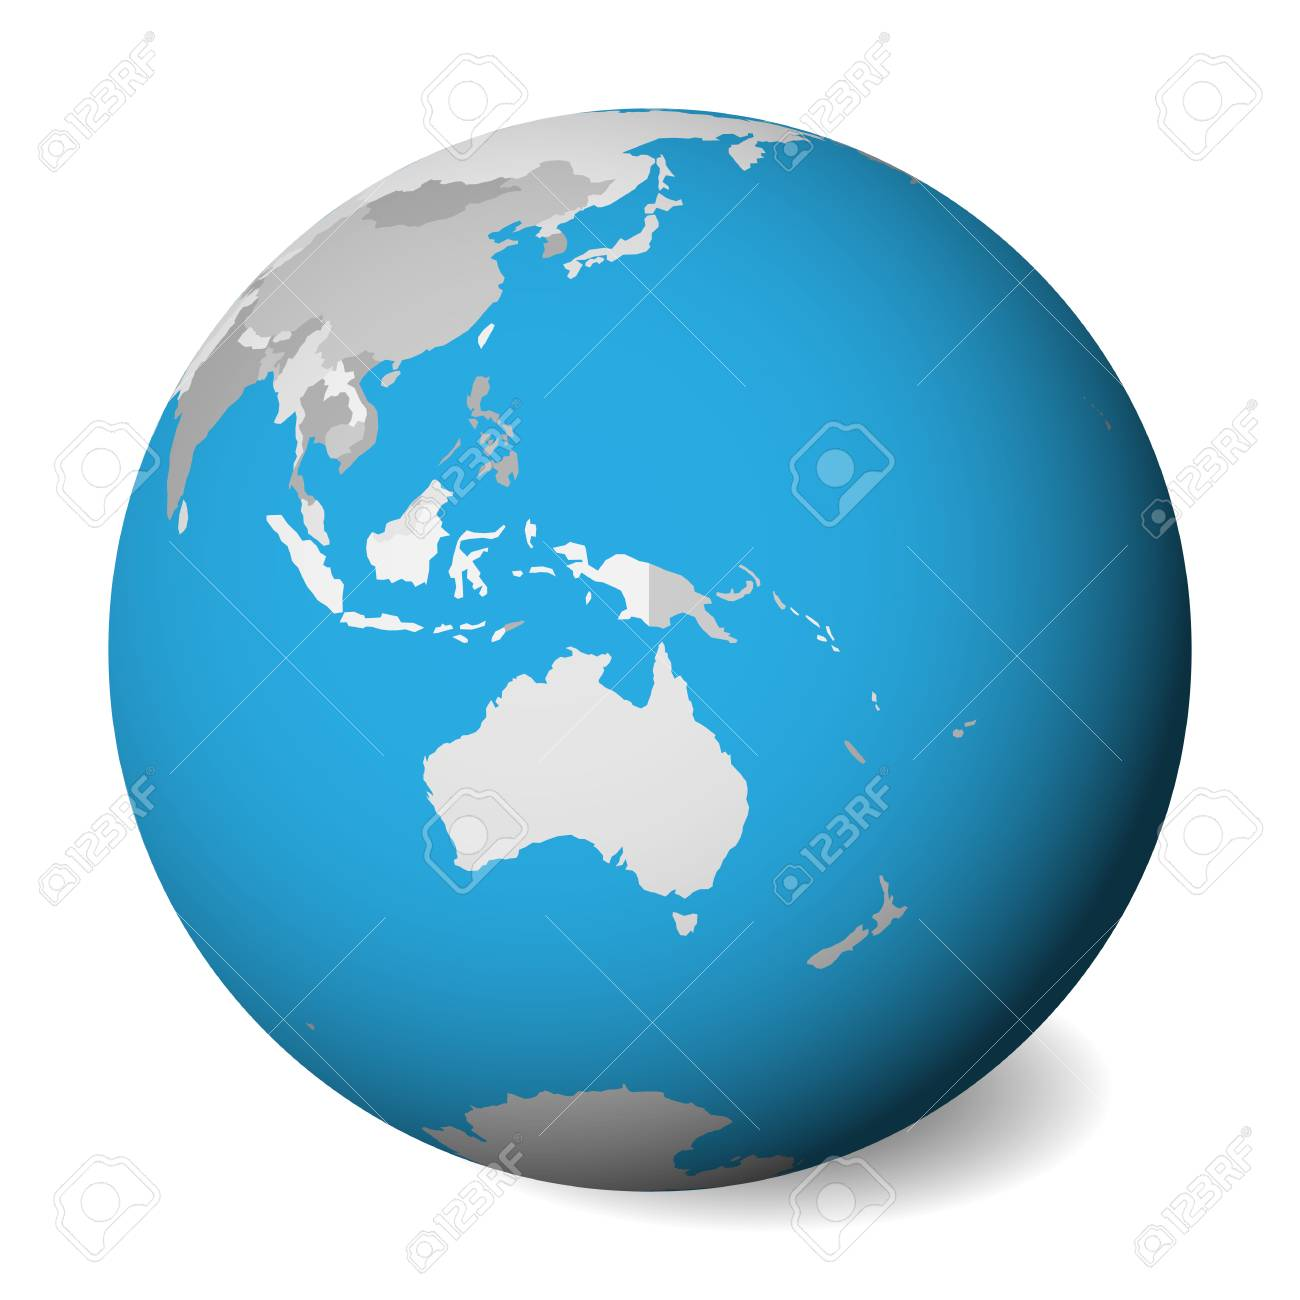 Australia Map Globe.Blank Political Map Of Australia 3d Earth Globe With Blue Water